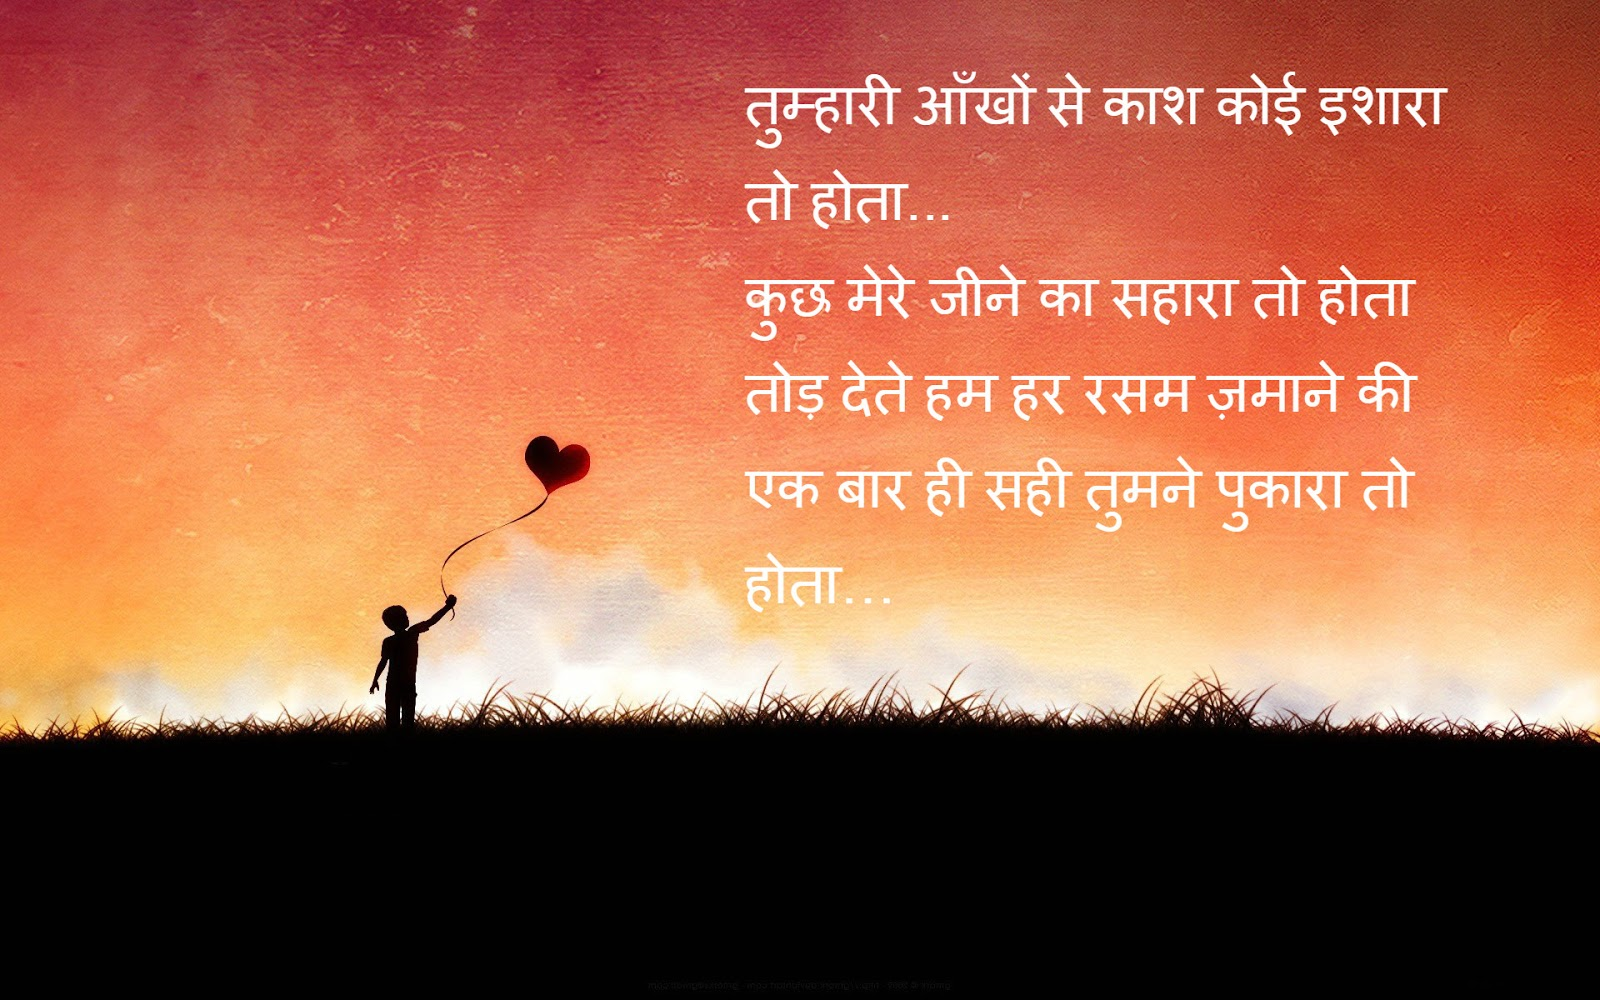 Sad Love Good Morning Wallpaper : Shayari Urdu Images,urdu shayari with picture,urdu shayari wallpaper,love shayari urdu,sad love ...